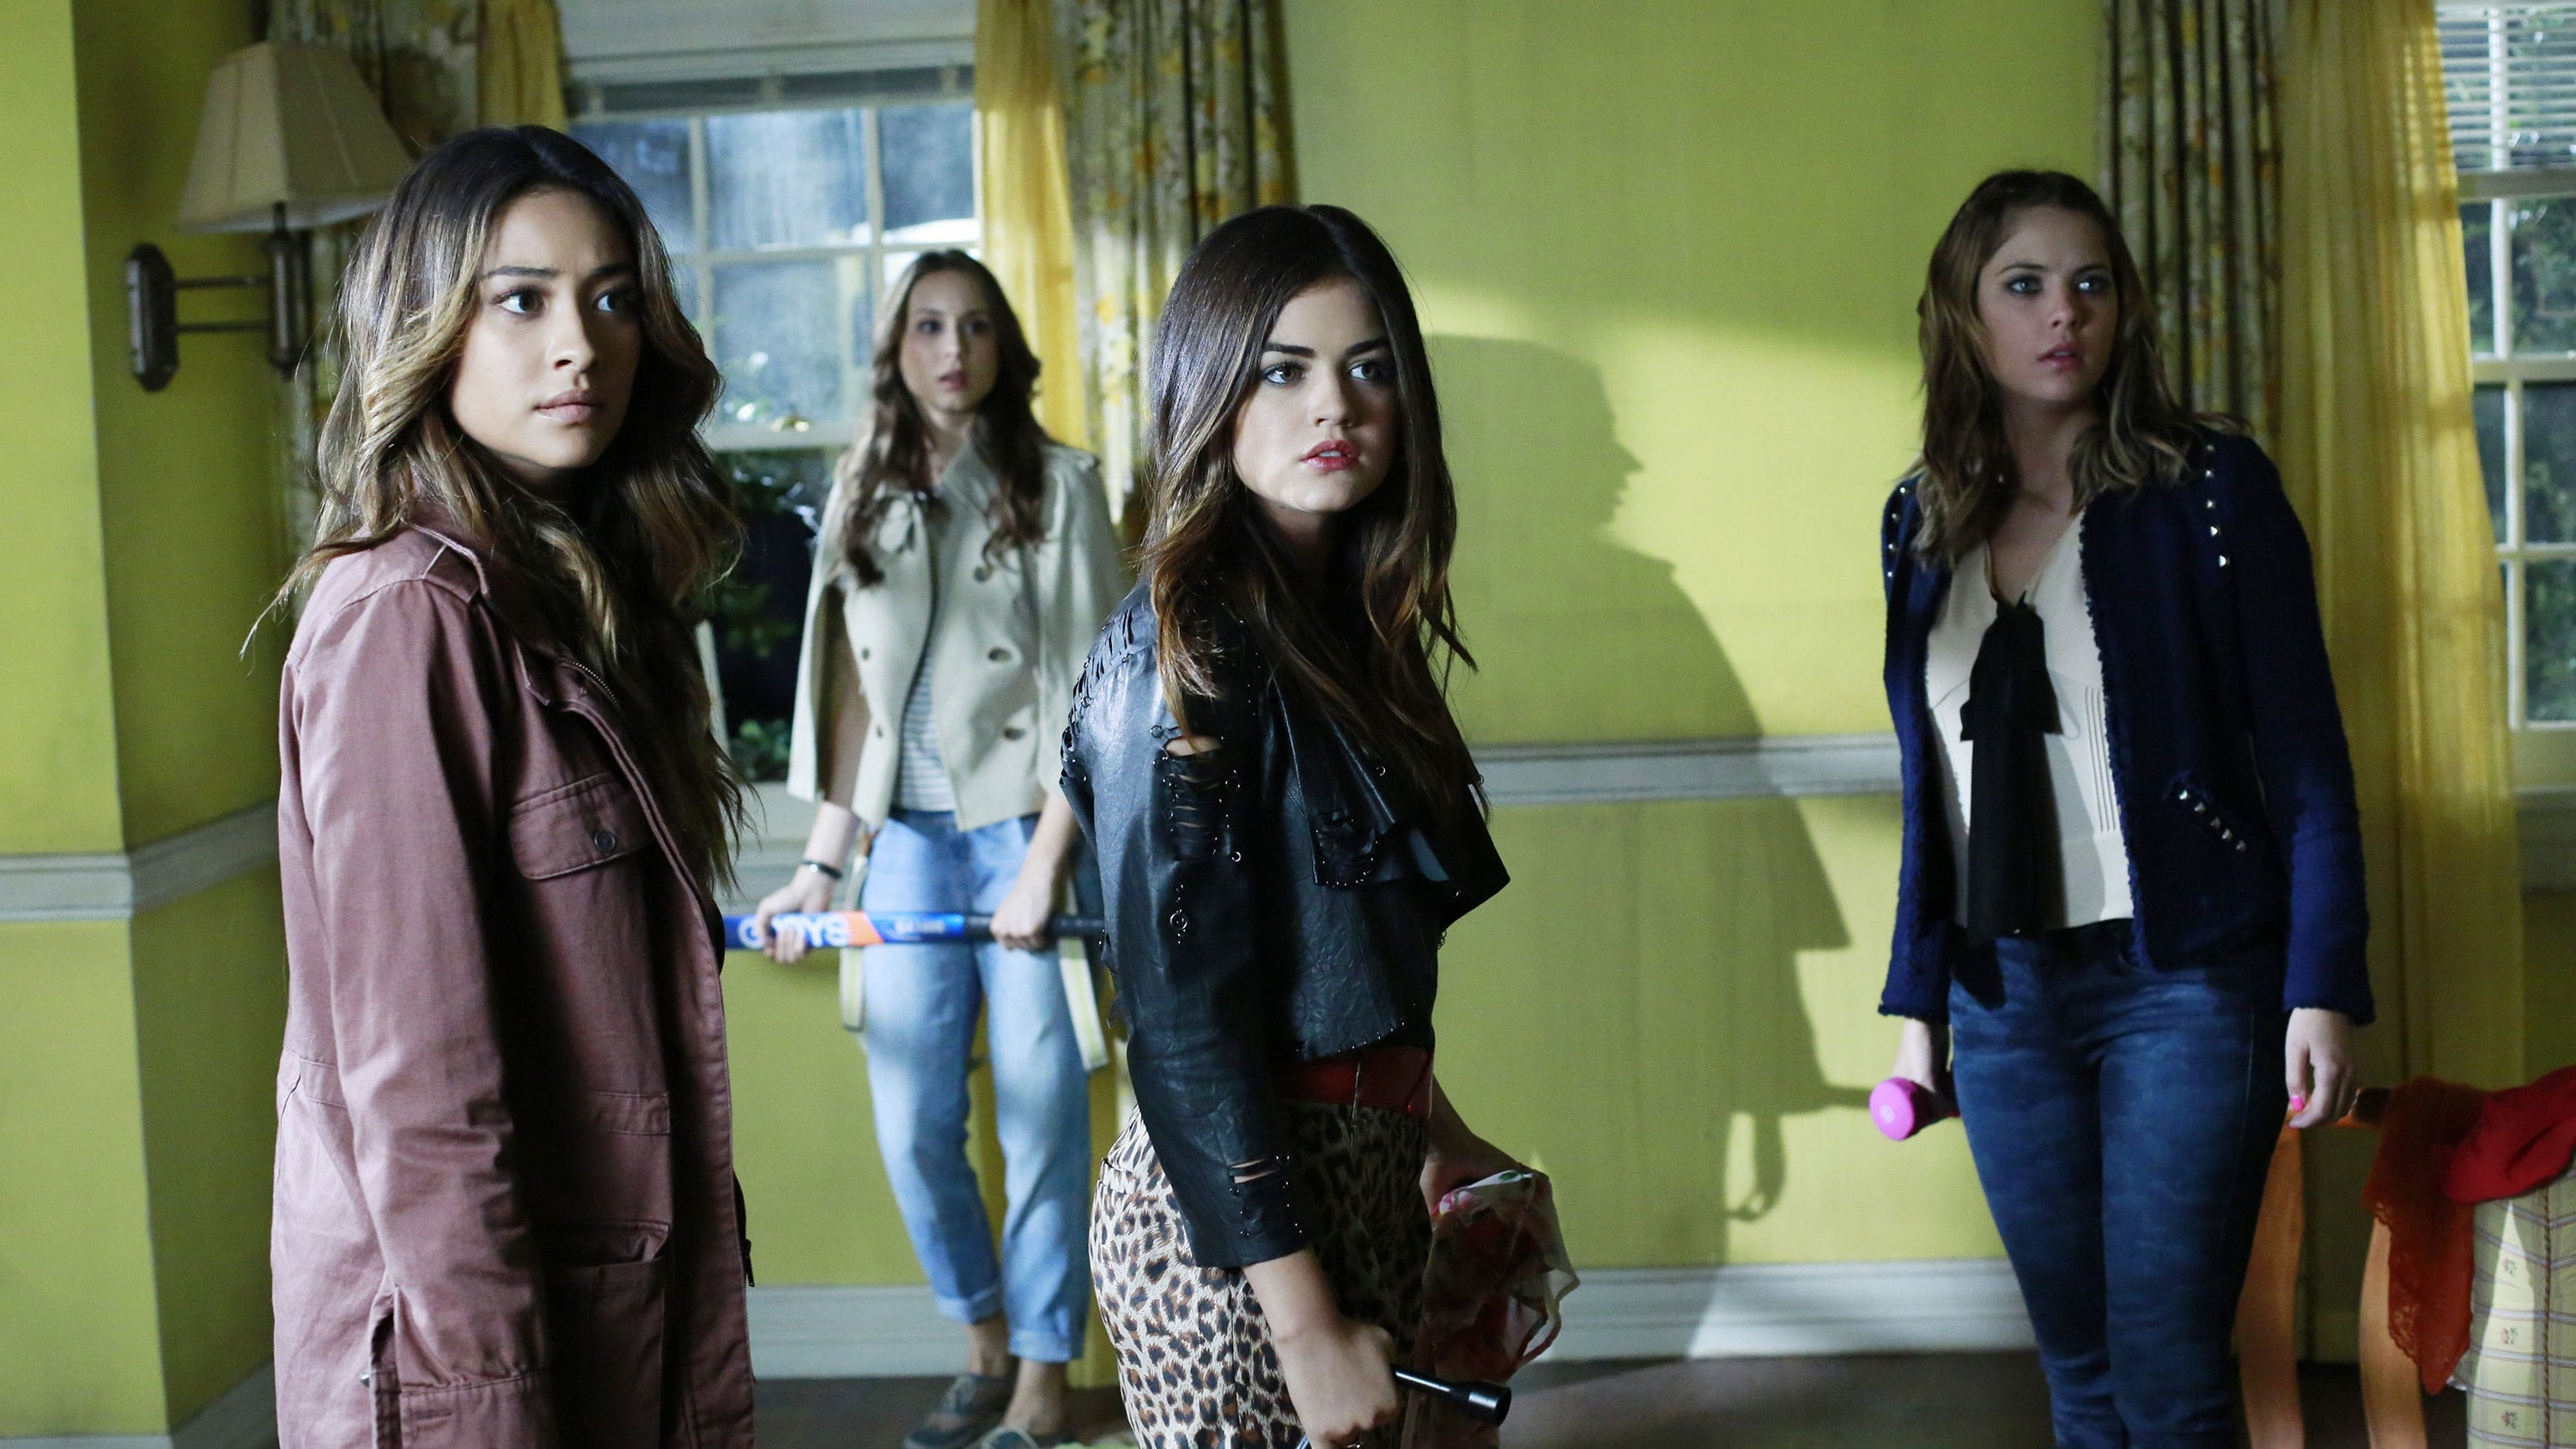 narrative voice in pretty little liars Dialogue is another narrative techniques in pretty little liars that has helped to develop hanna and drive the narrative throughout season 1 hanna and mona talk about hanna's boyfriend, caleb previously, caleb gave mona a letter to give to hanna, but mona ripped it up instead of doing just that.